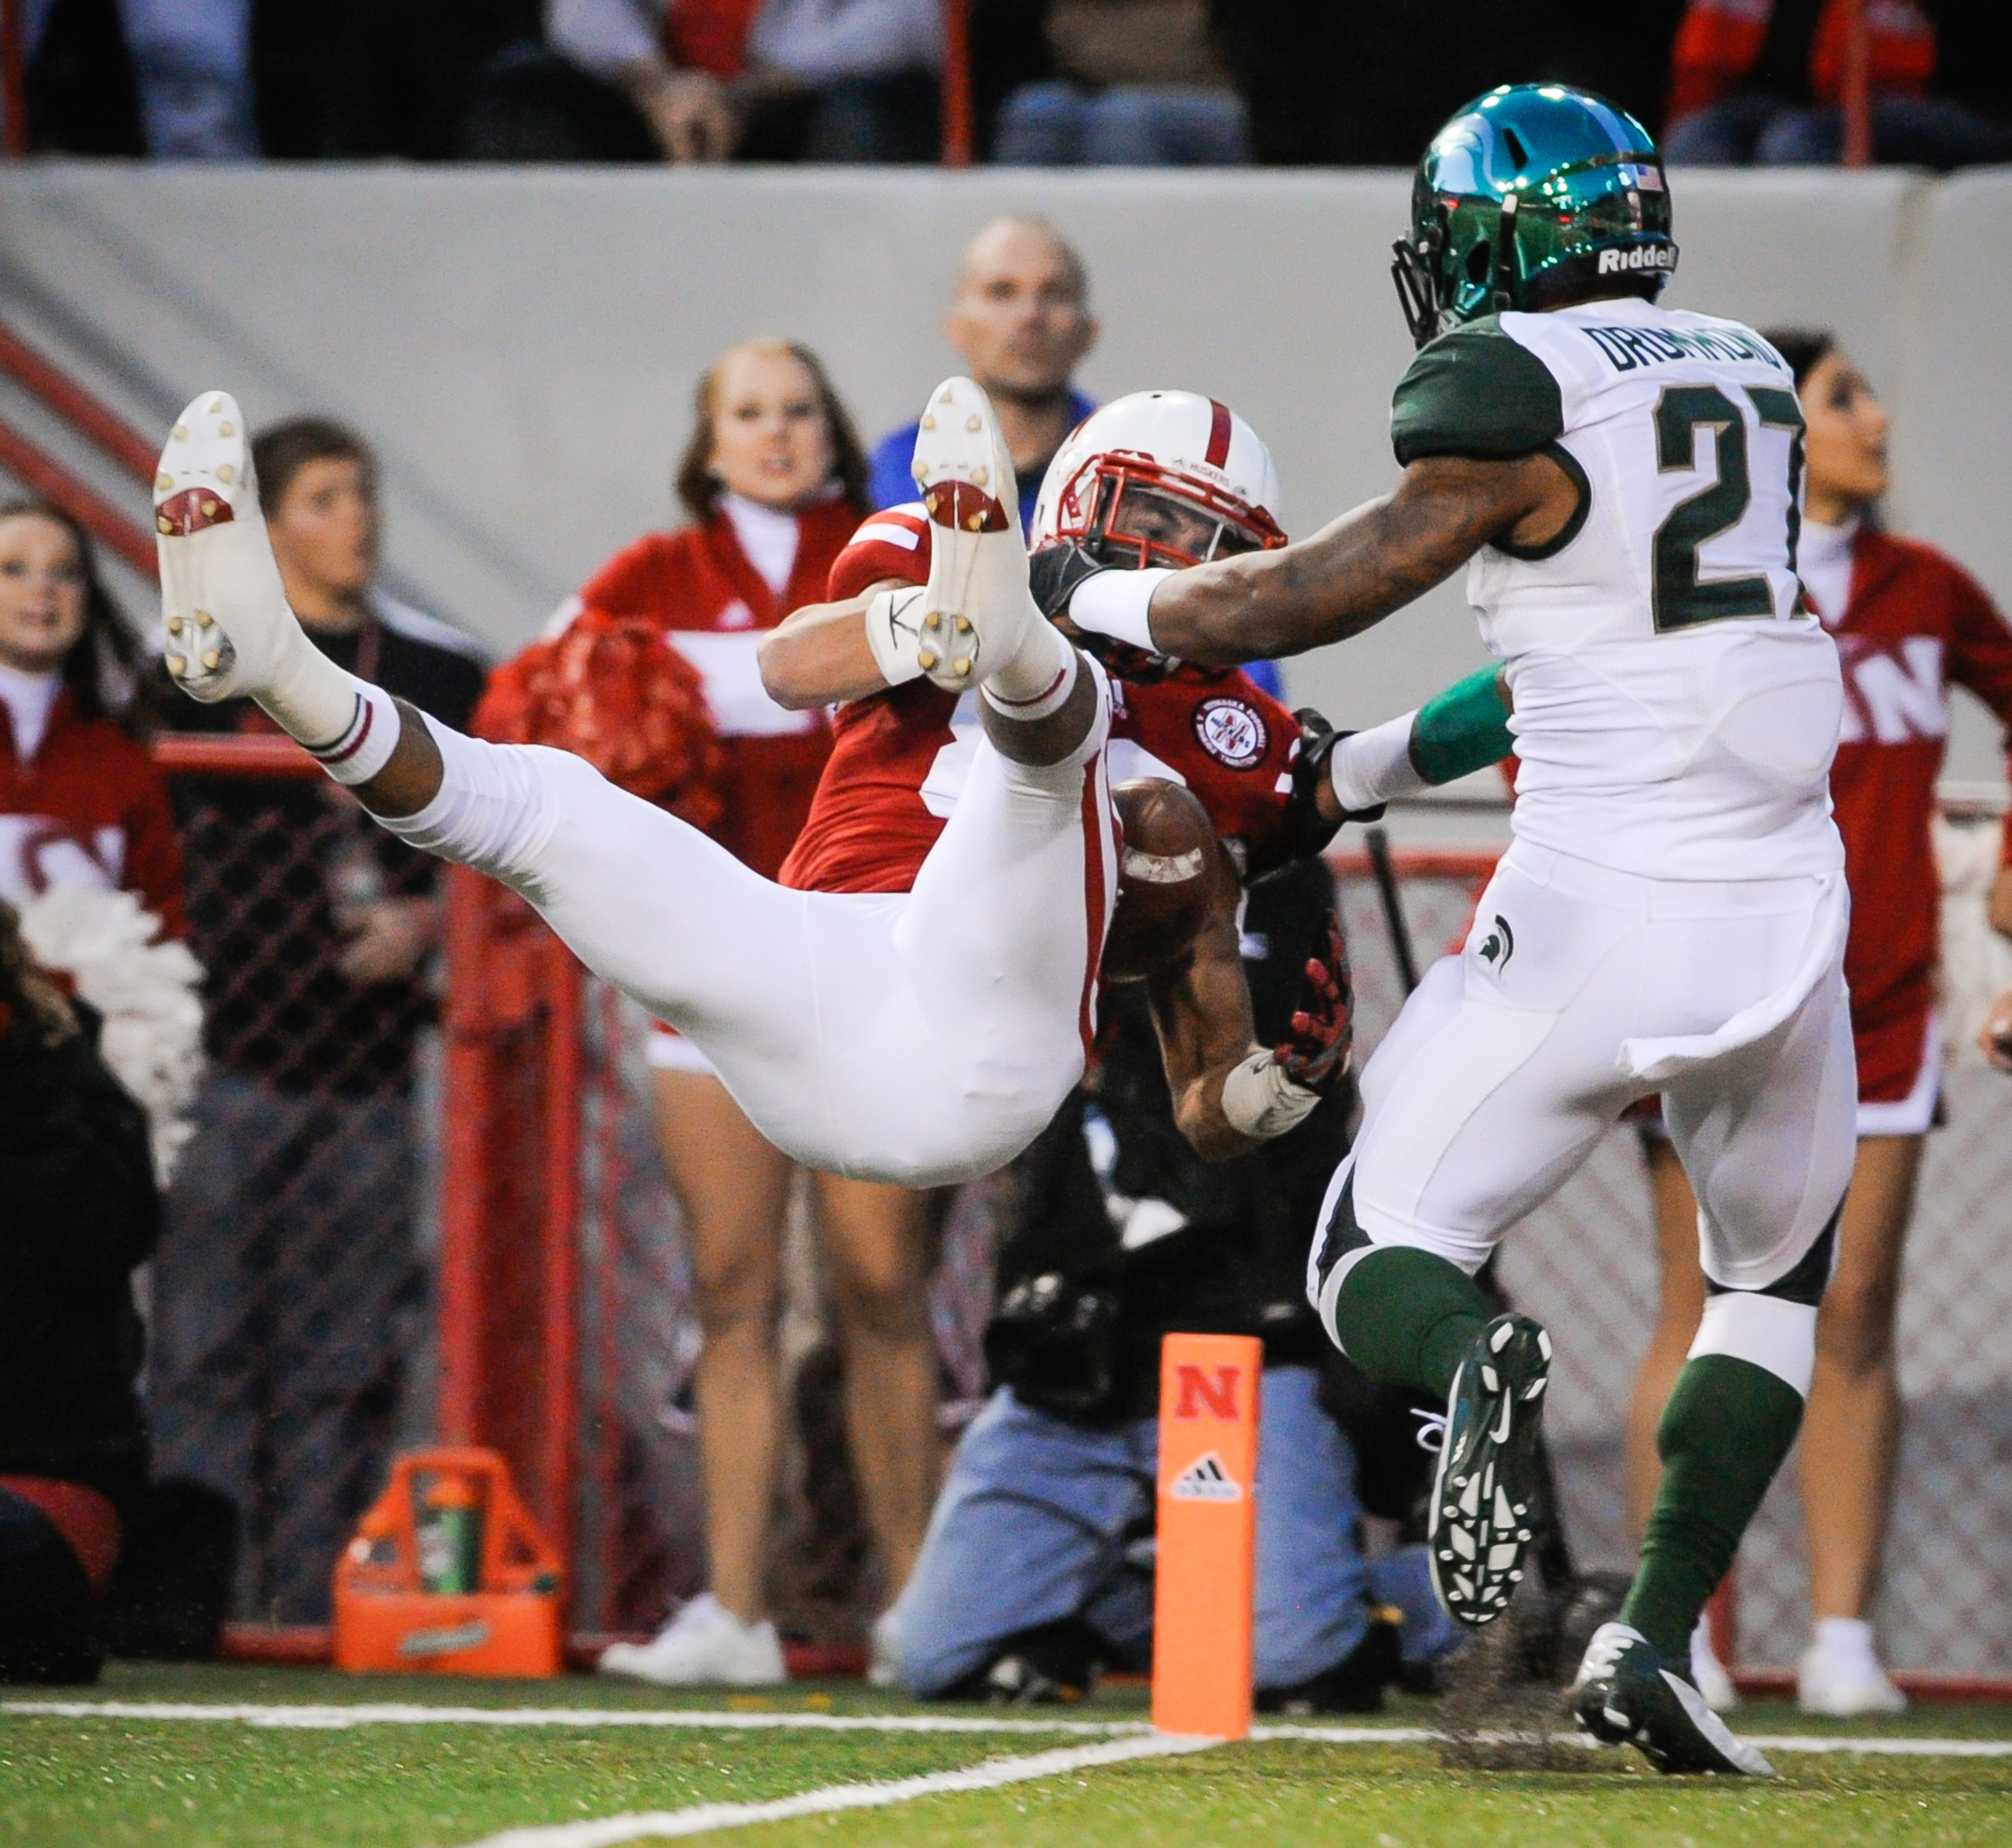 Kenny Bell making yet another difficult catch.